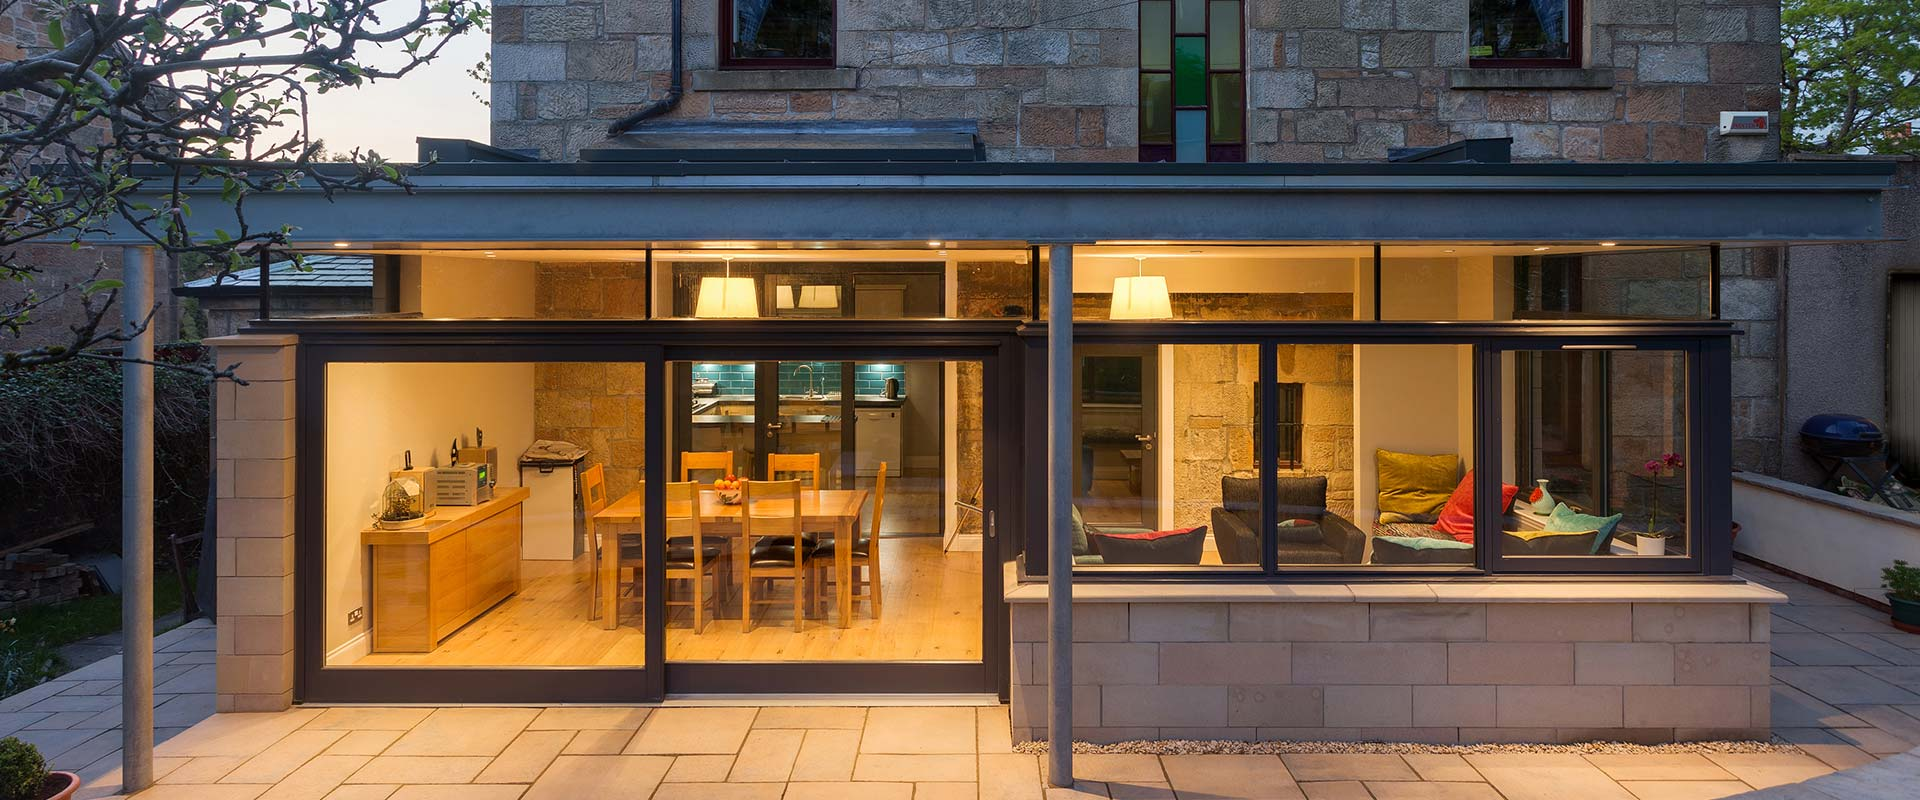 Residential Architects Glasgow